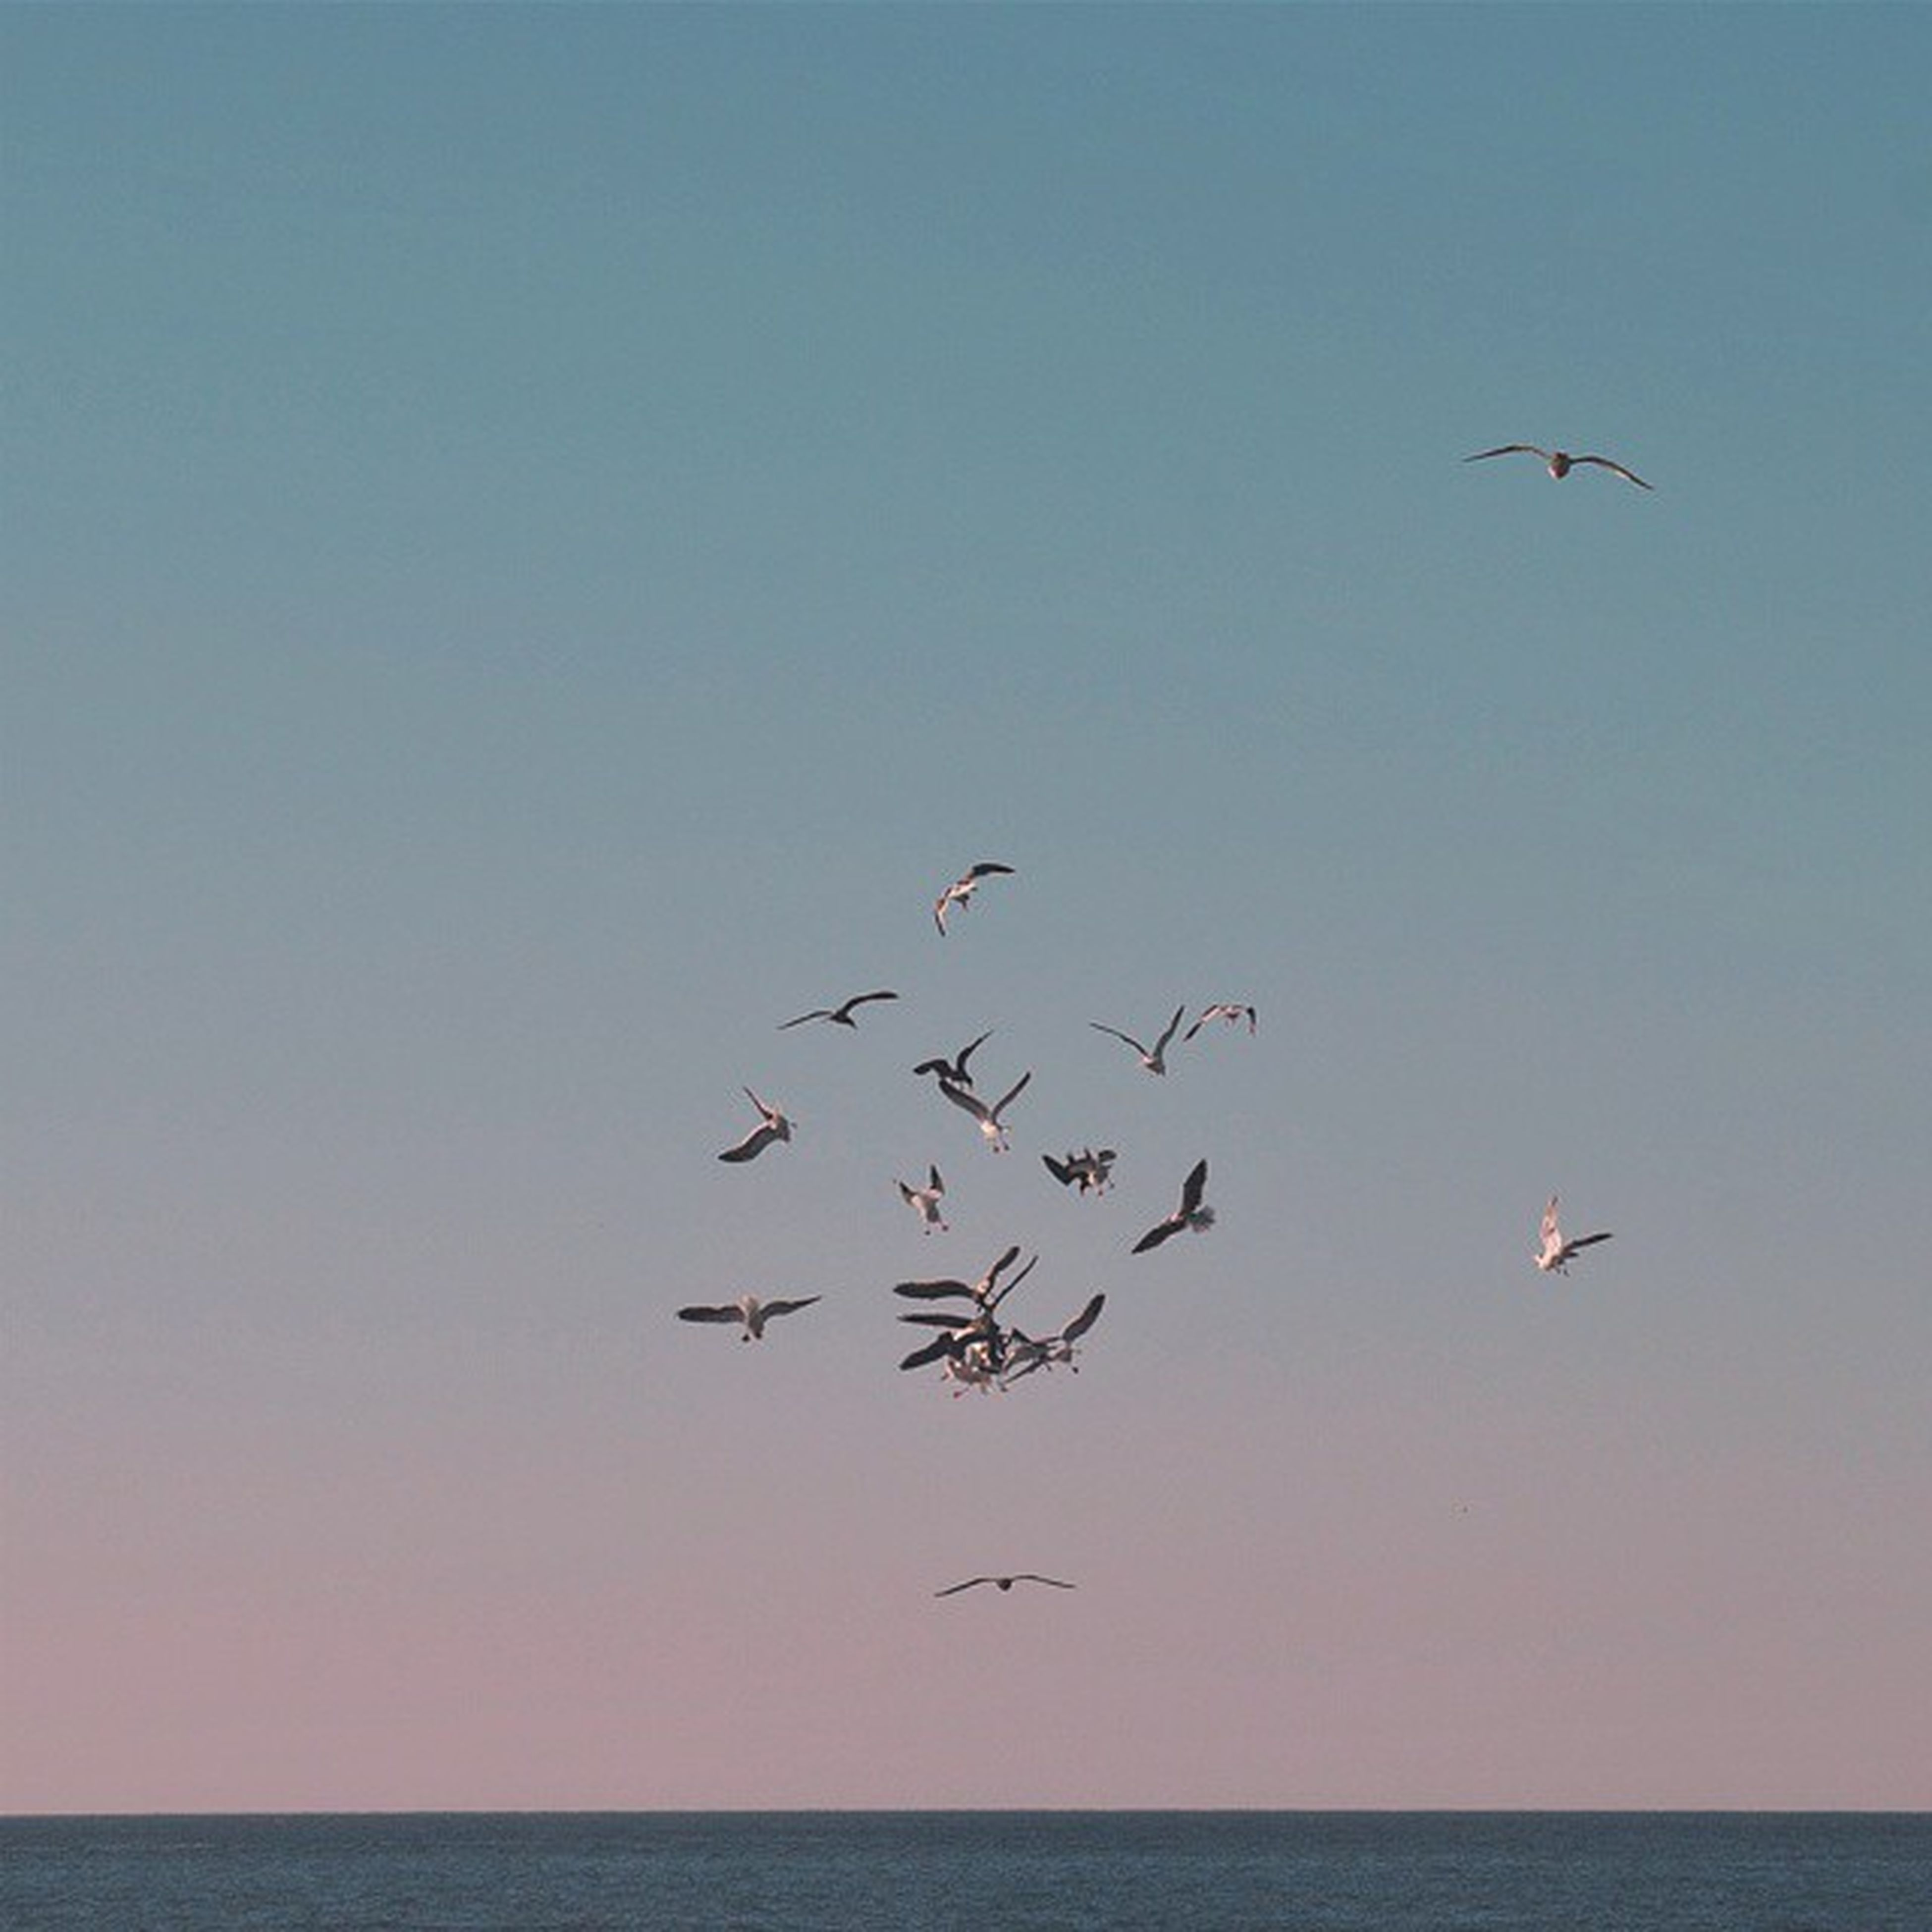 flying, bird, animal themes, animals in the wild, mid-air, wildlife, clear sky, spread wings, flock of birds, nature, sky, copy space, medium group of animals, beauty in nature, low angle view, outdoors, sea, scenics, seagull